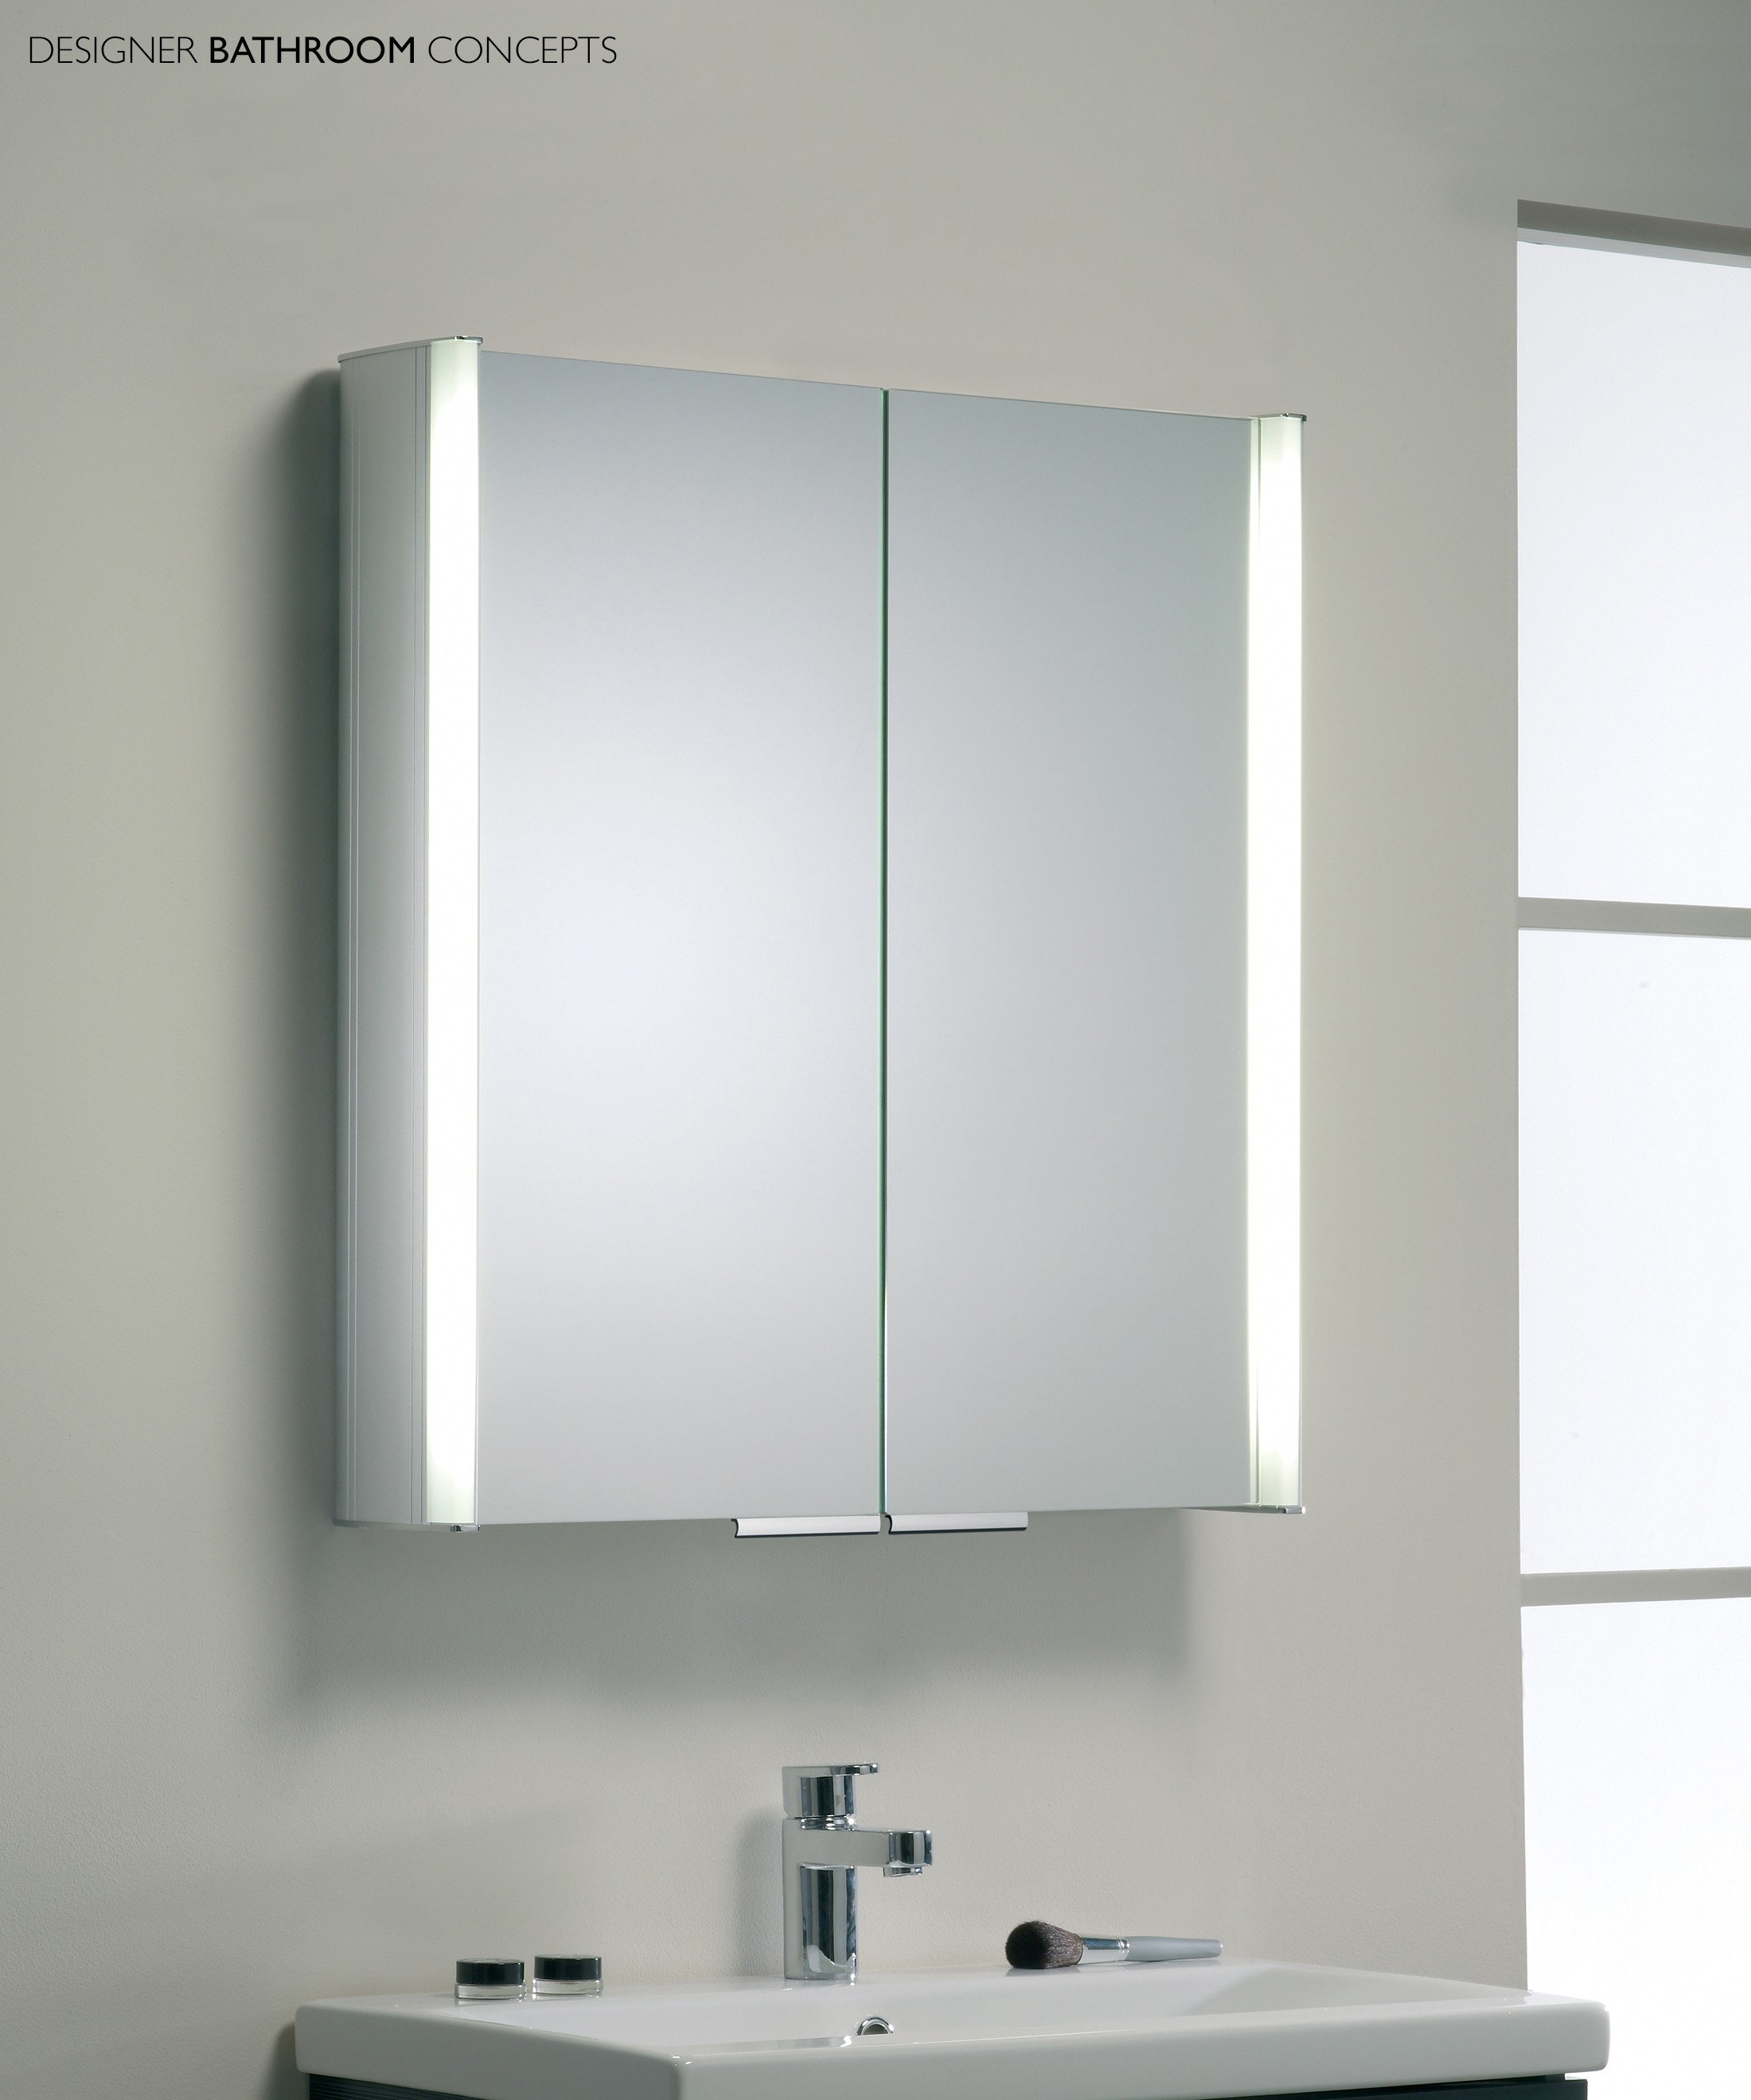 Stainless Steel Wall Mirror Bathroom Cabinet